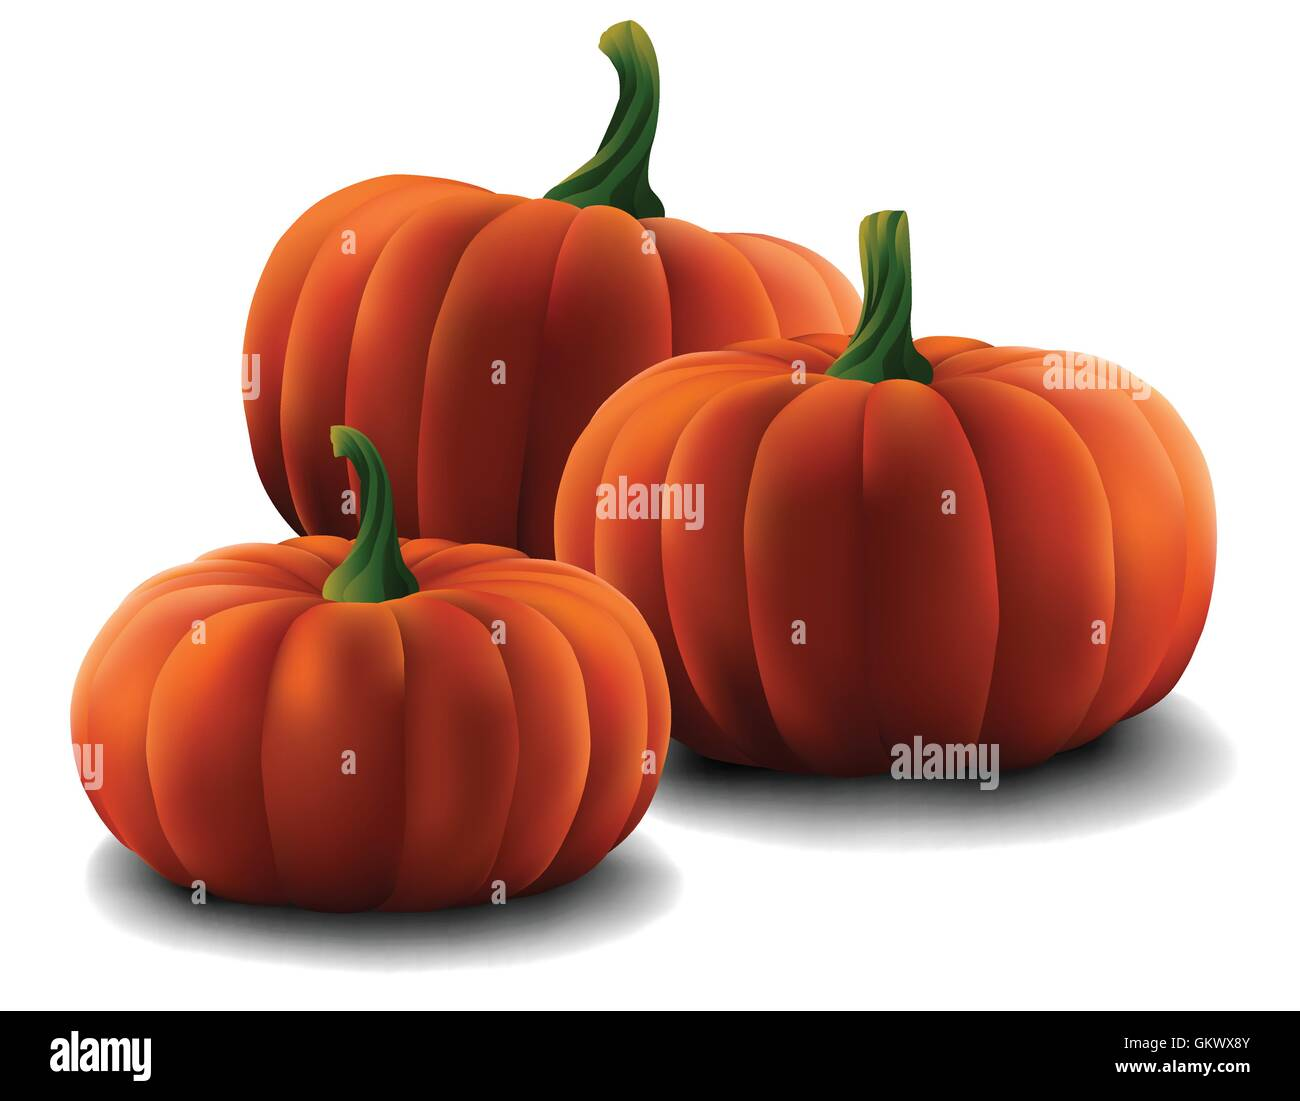 Set of Pumpkins isolated on a plain background. - Stock Vector